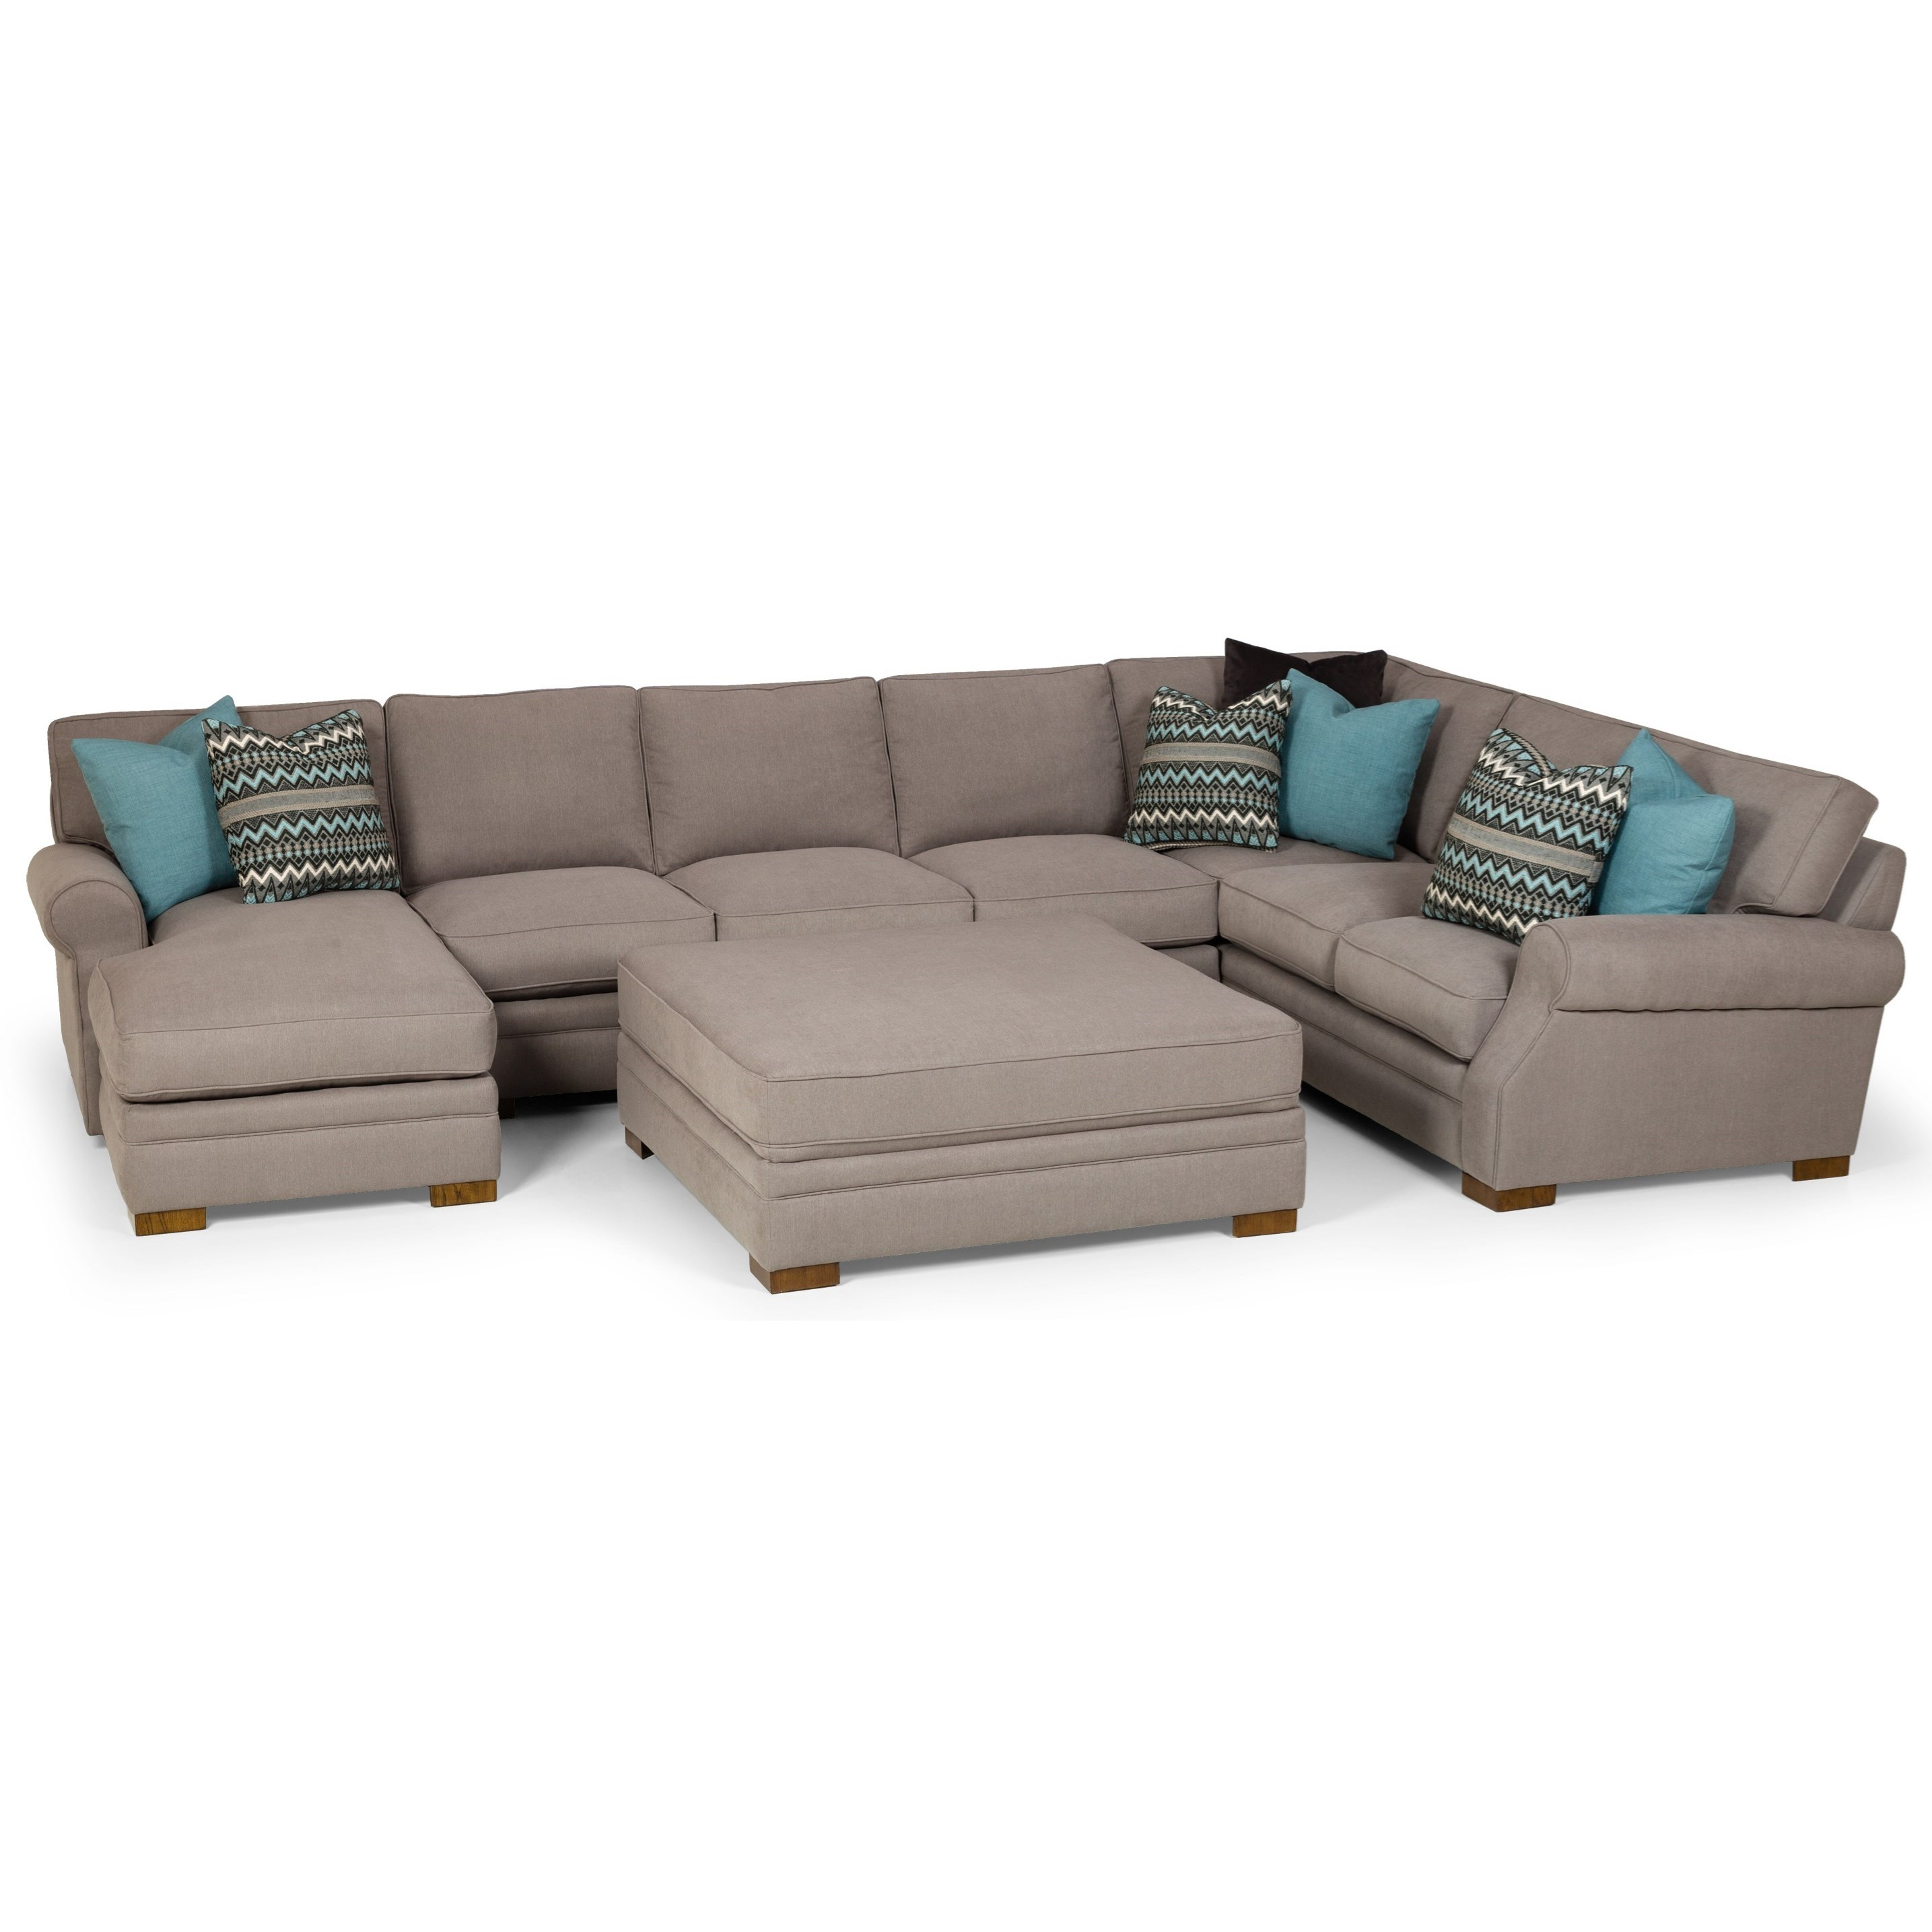 525 6-Seat Sectional Sofa w/ LAF Chaise by Stanton at Wilson's Furniture